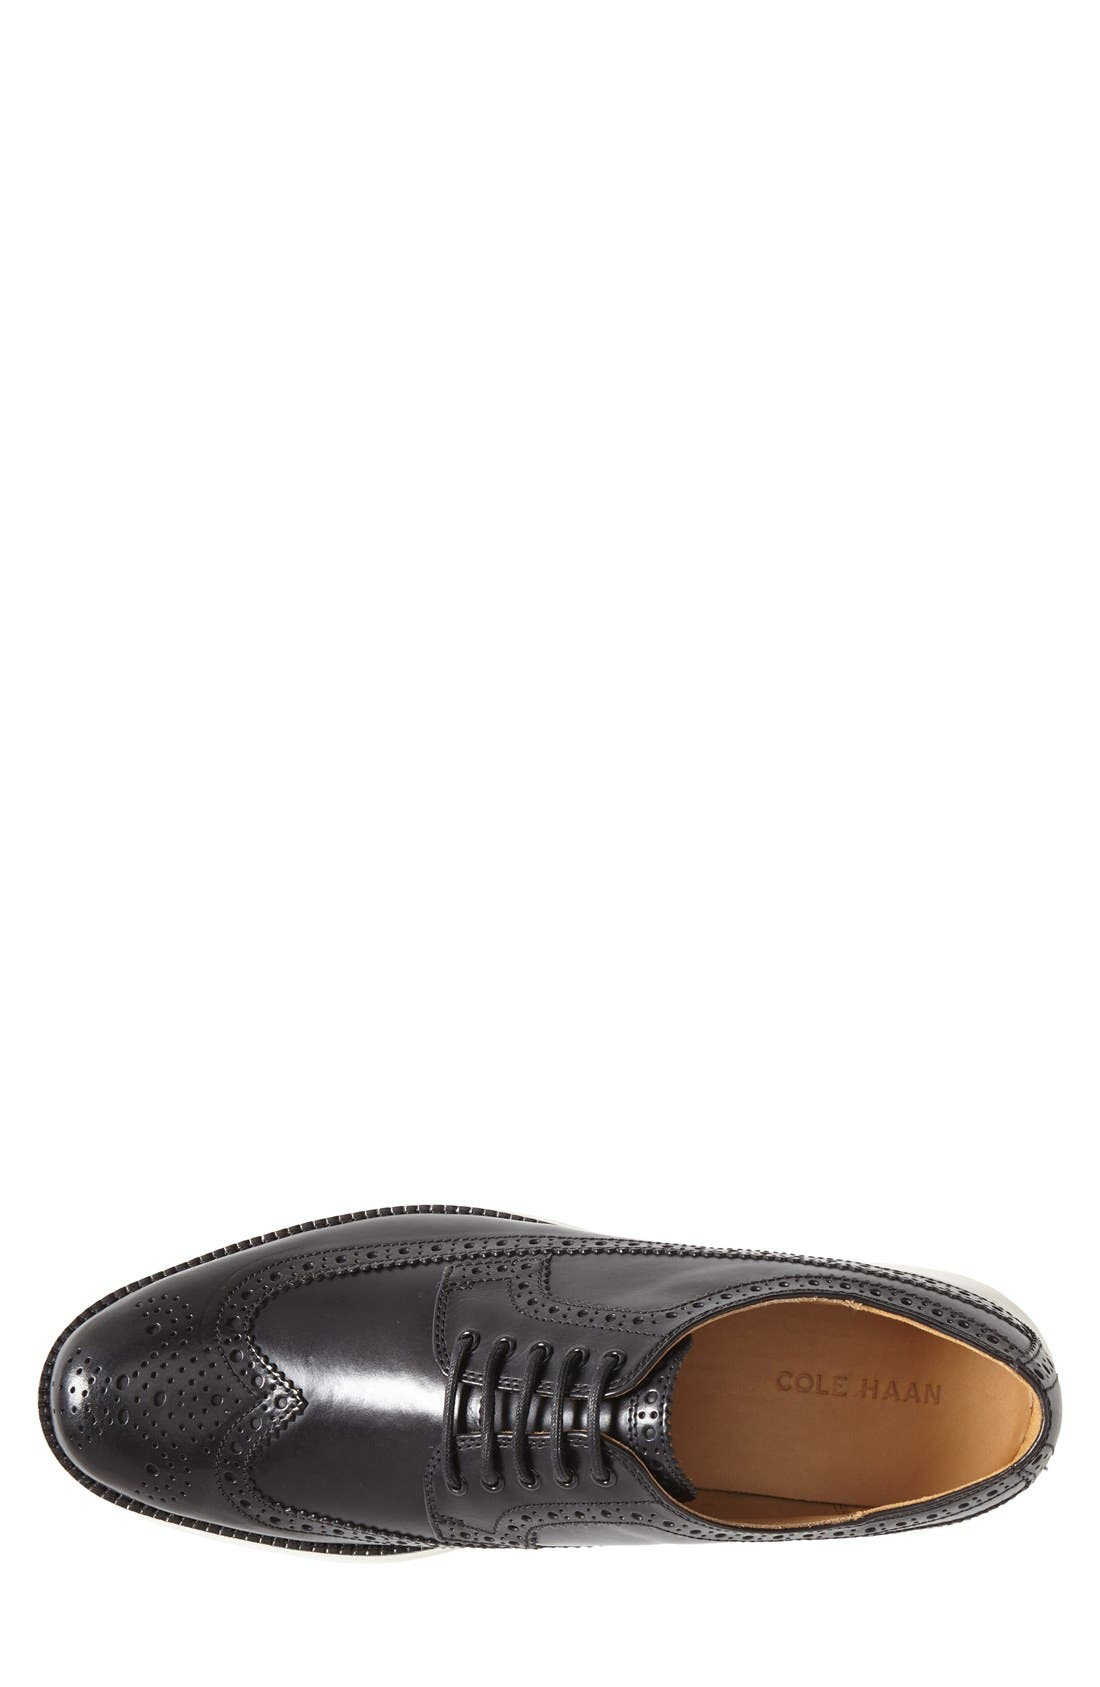 COLE HAAN,                             'LunarGrand' Wingtip,                             Alternate thumbnail 4, color,                             001